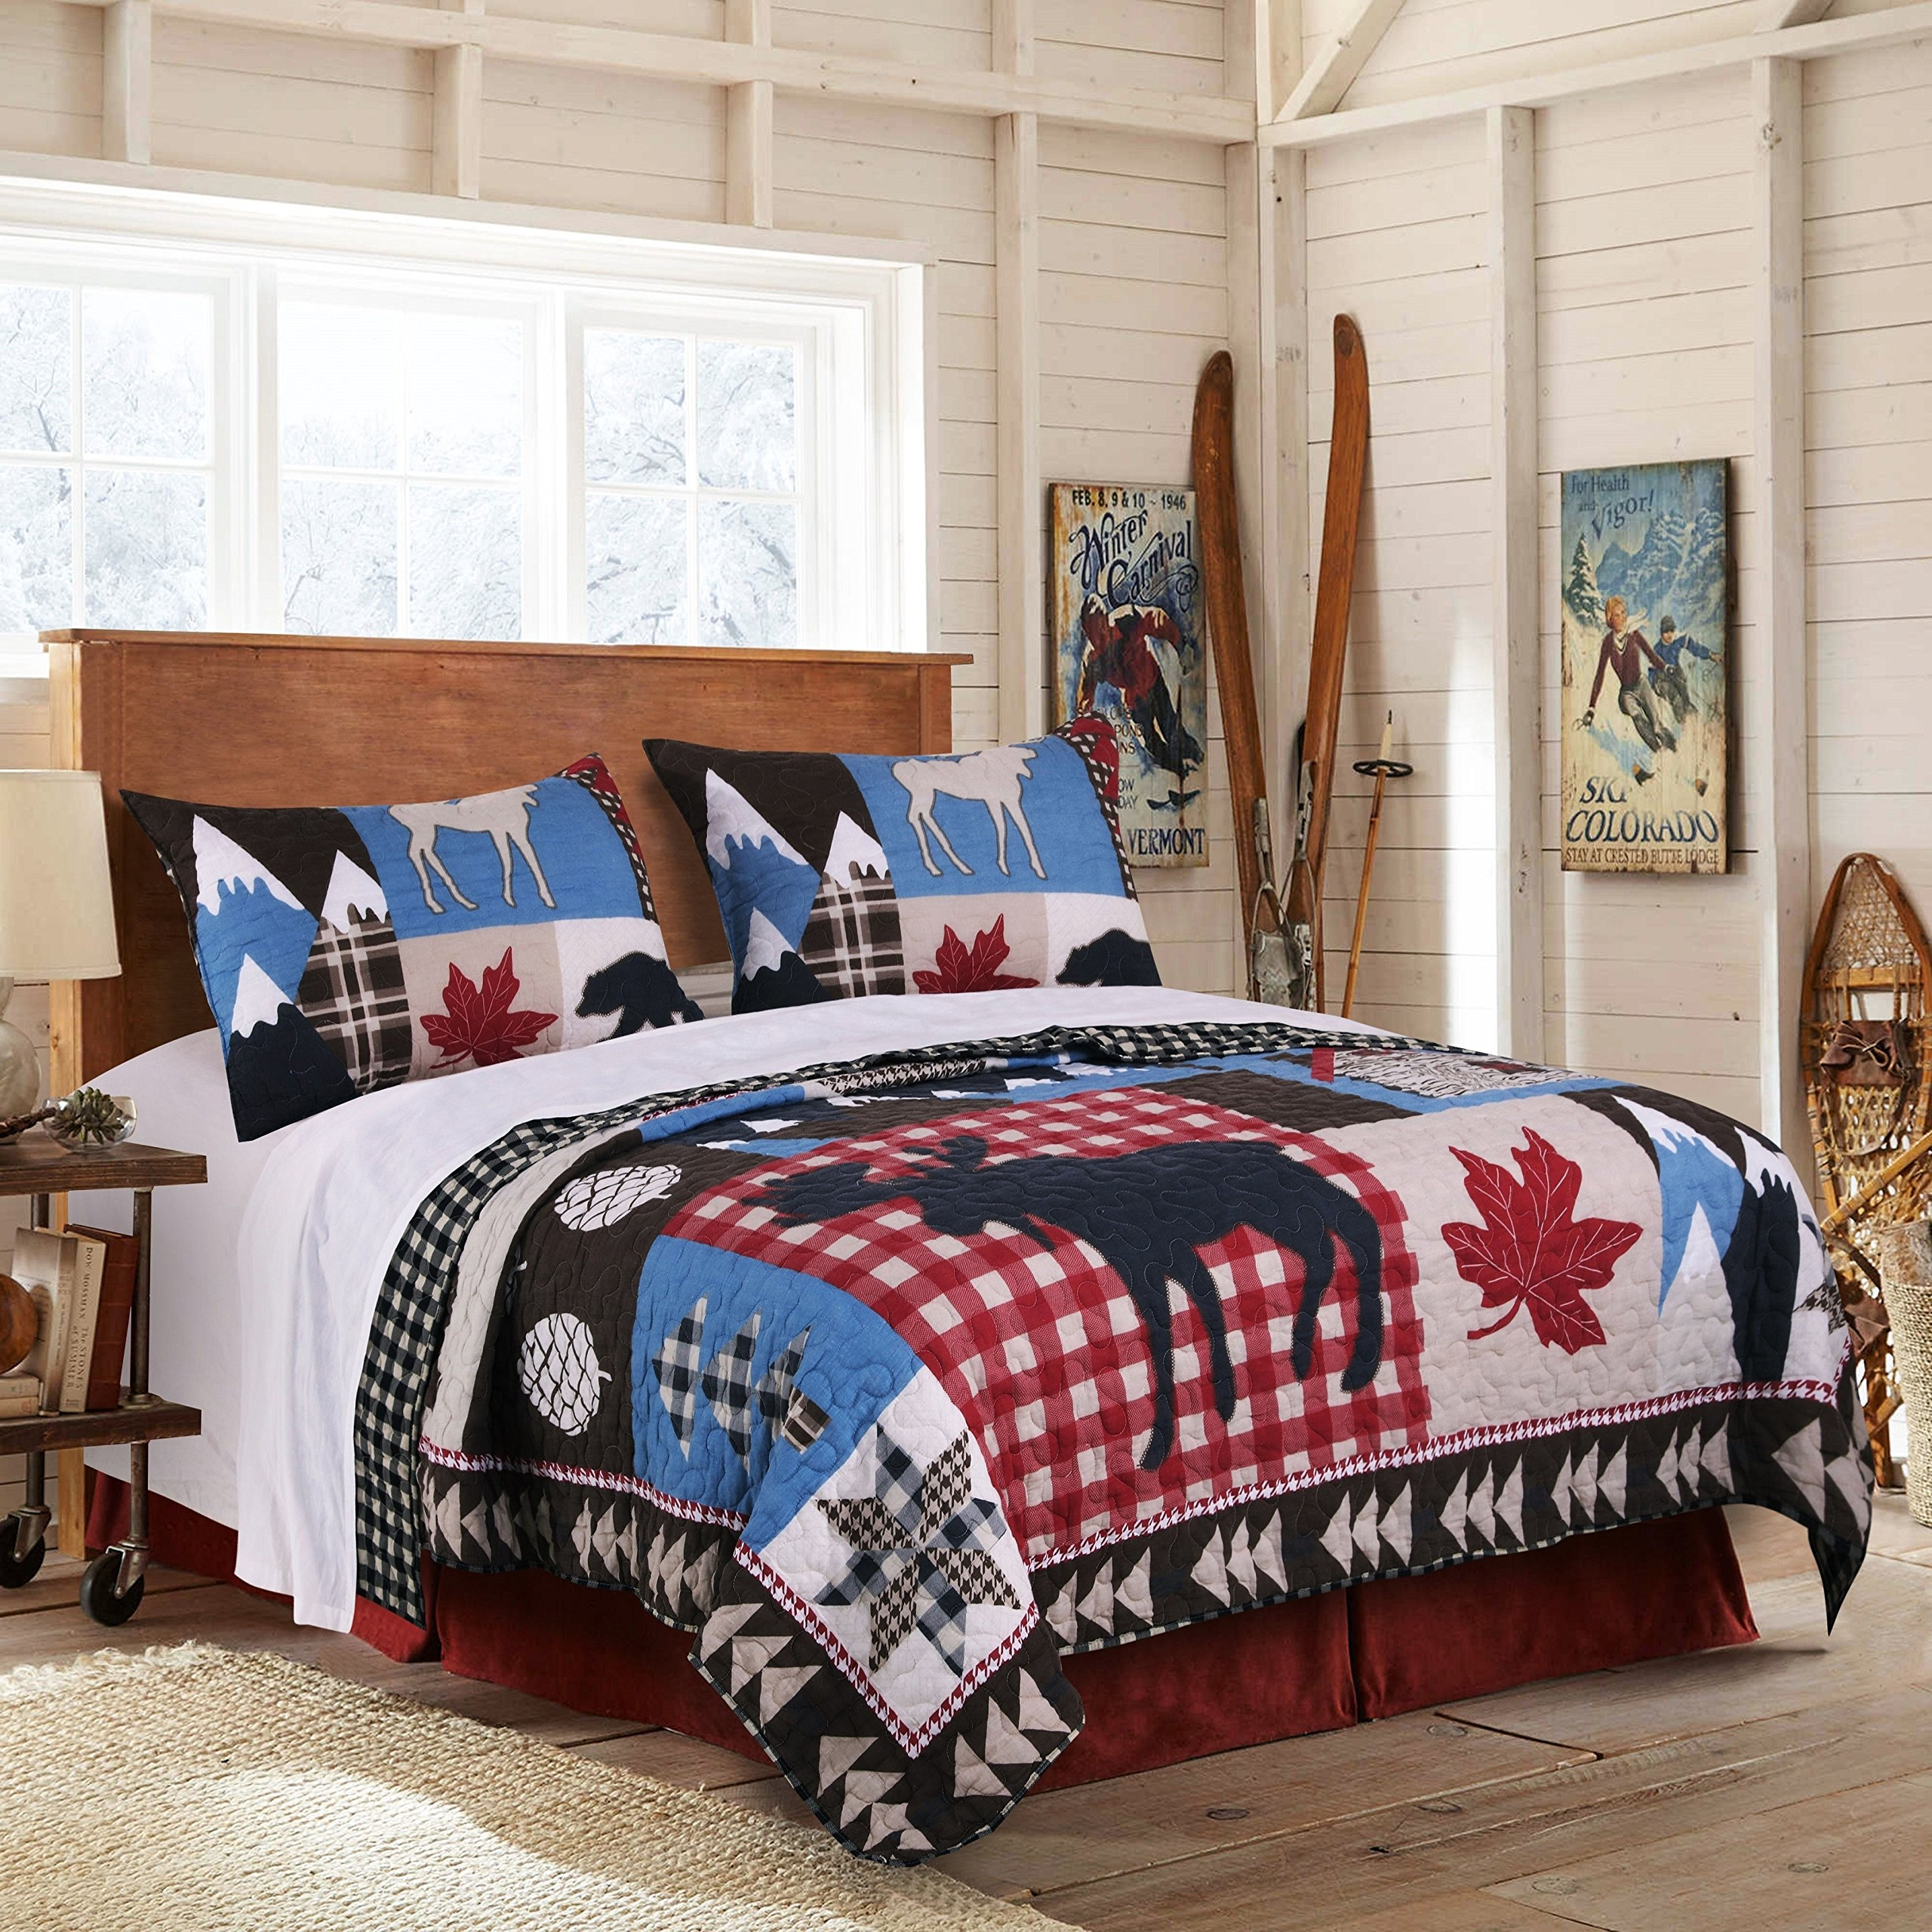 3 Piece Blue White Red Black Hunting Themed Quilt Full Queen Set, Black Bear Bedding Moose Plaid Log Cabin Pattern Lodge Leaf Mountains Snow Capped, Wilderness Wild, Reversible Microfiber Polyester